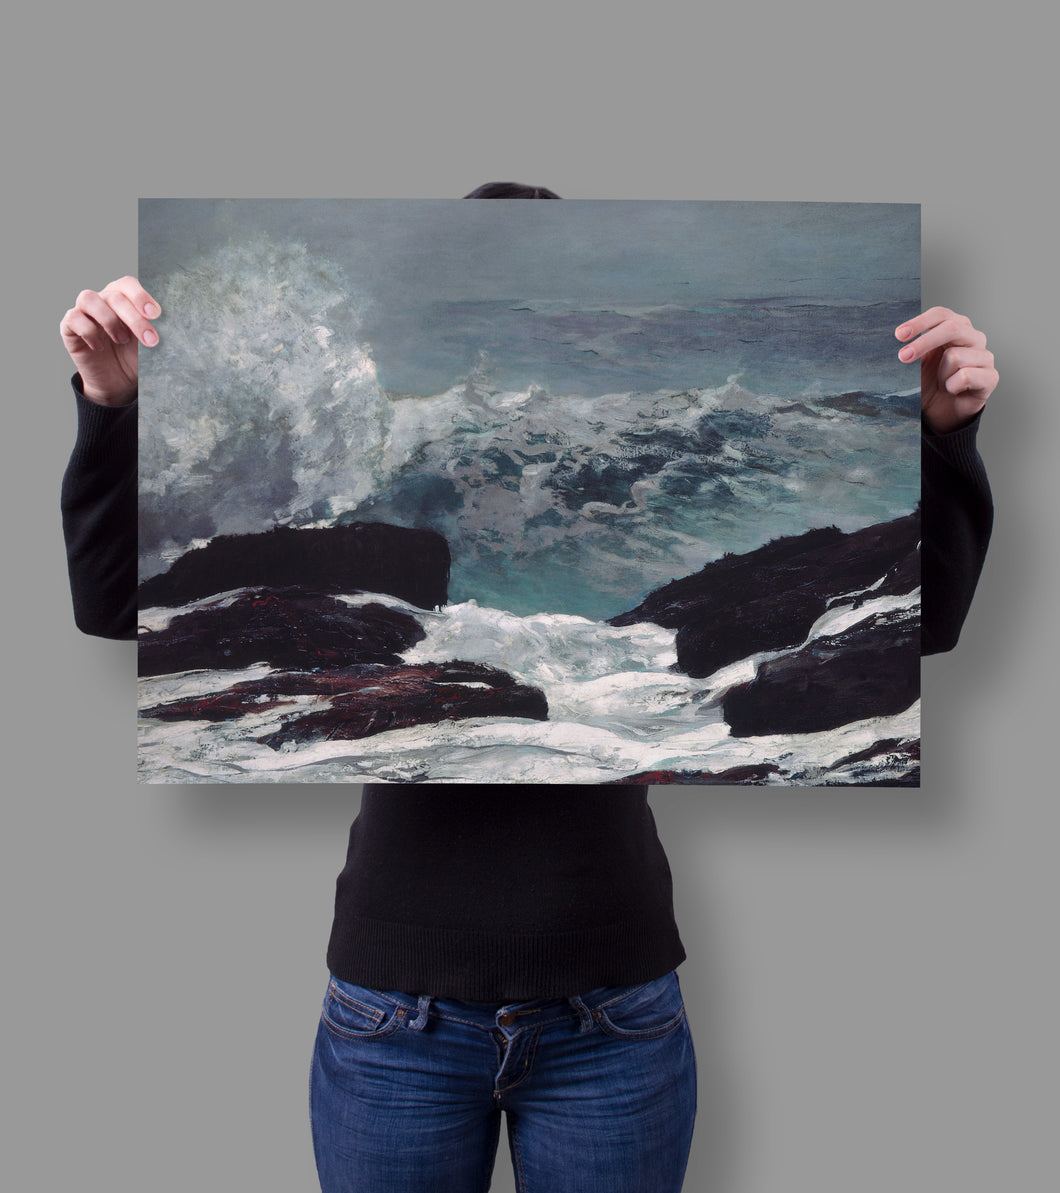 Shop.Mall.University- Maine Coast by Winslow Homer 18x24 Poster, , Shop Mall University. All at a low price to help you save money and live great! Only here at - Shop Mall University